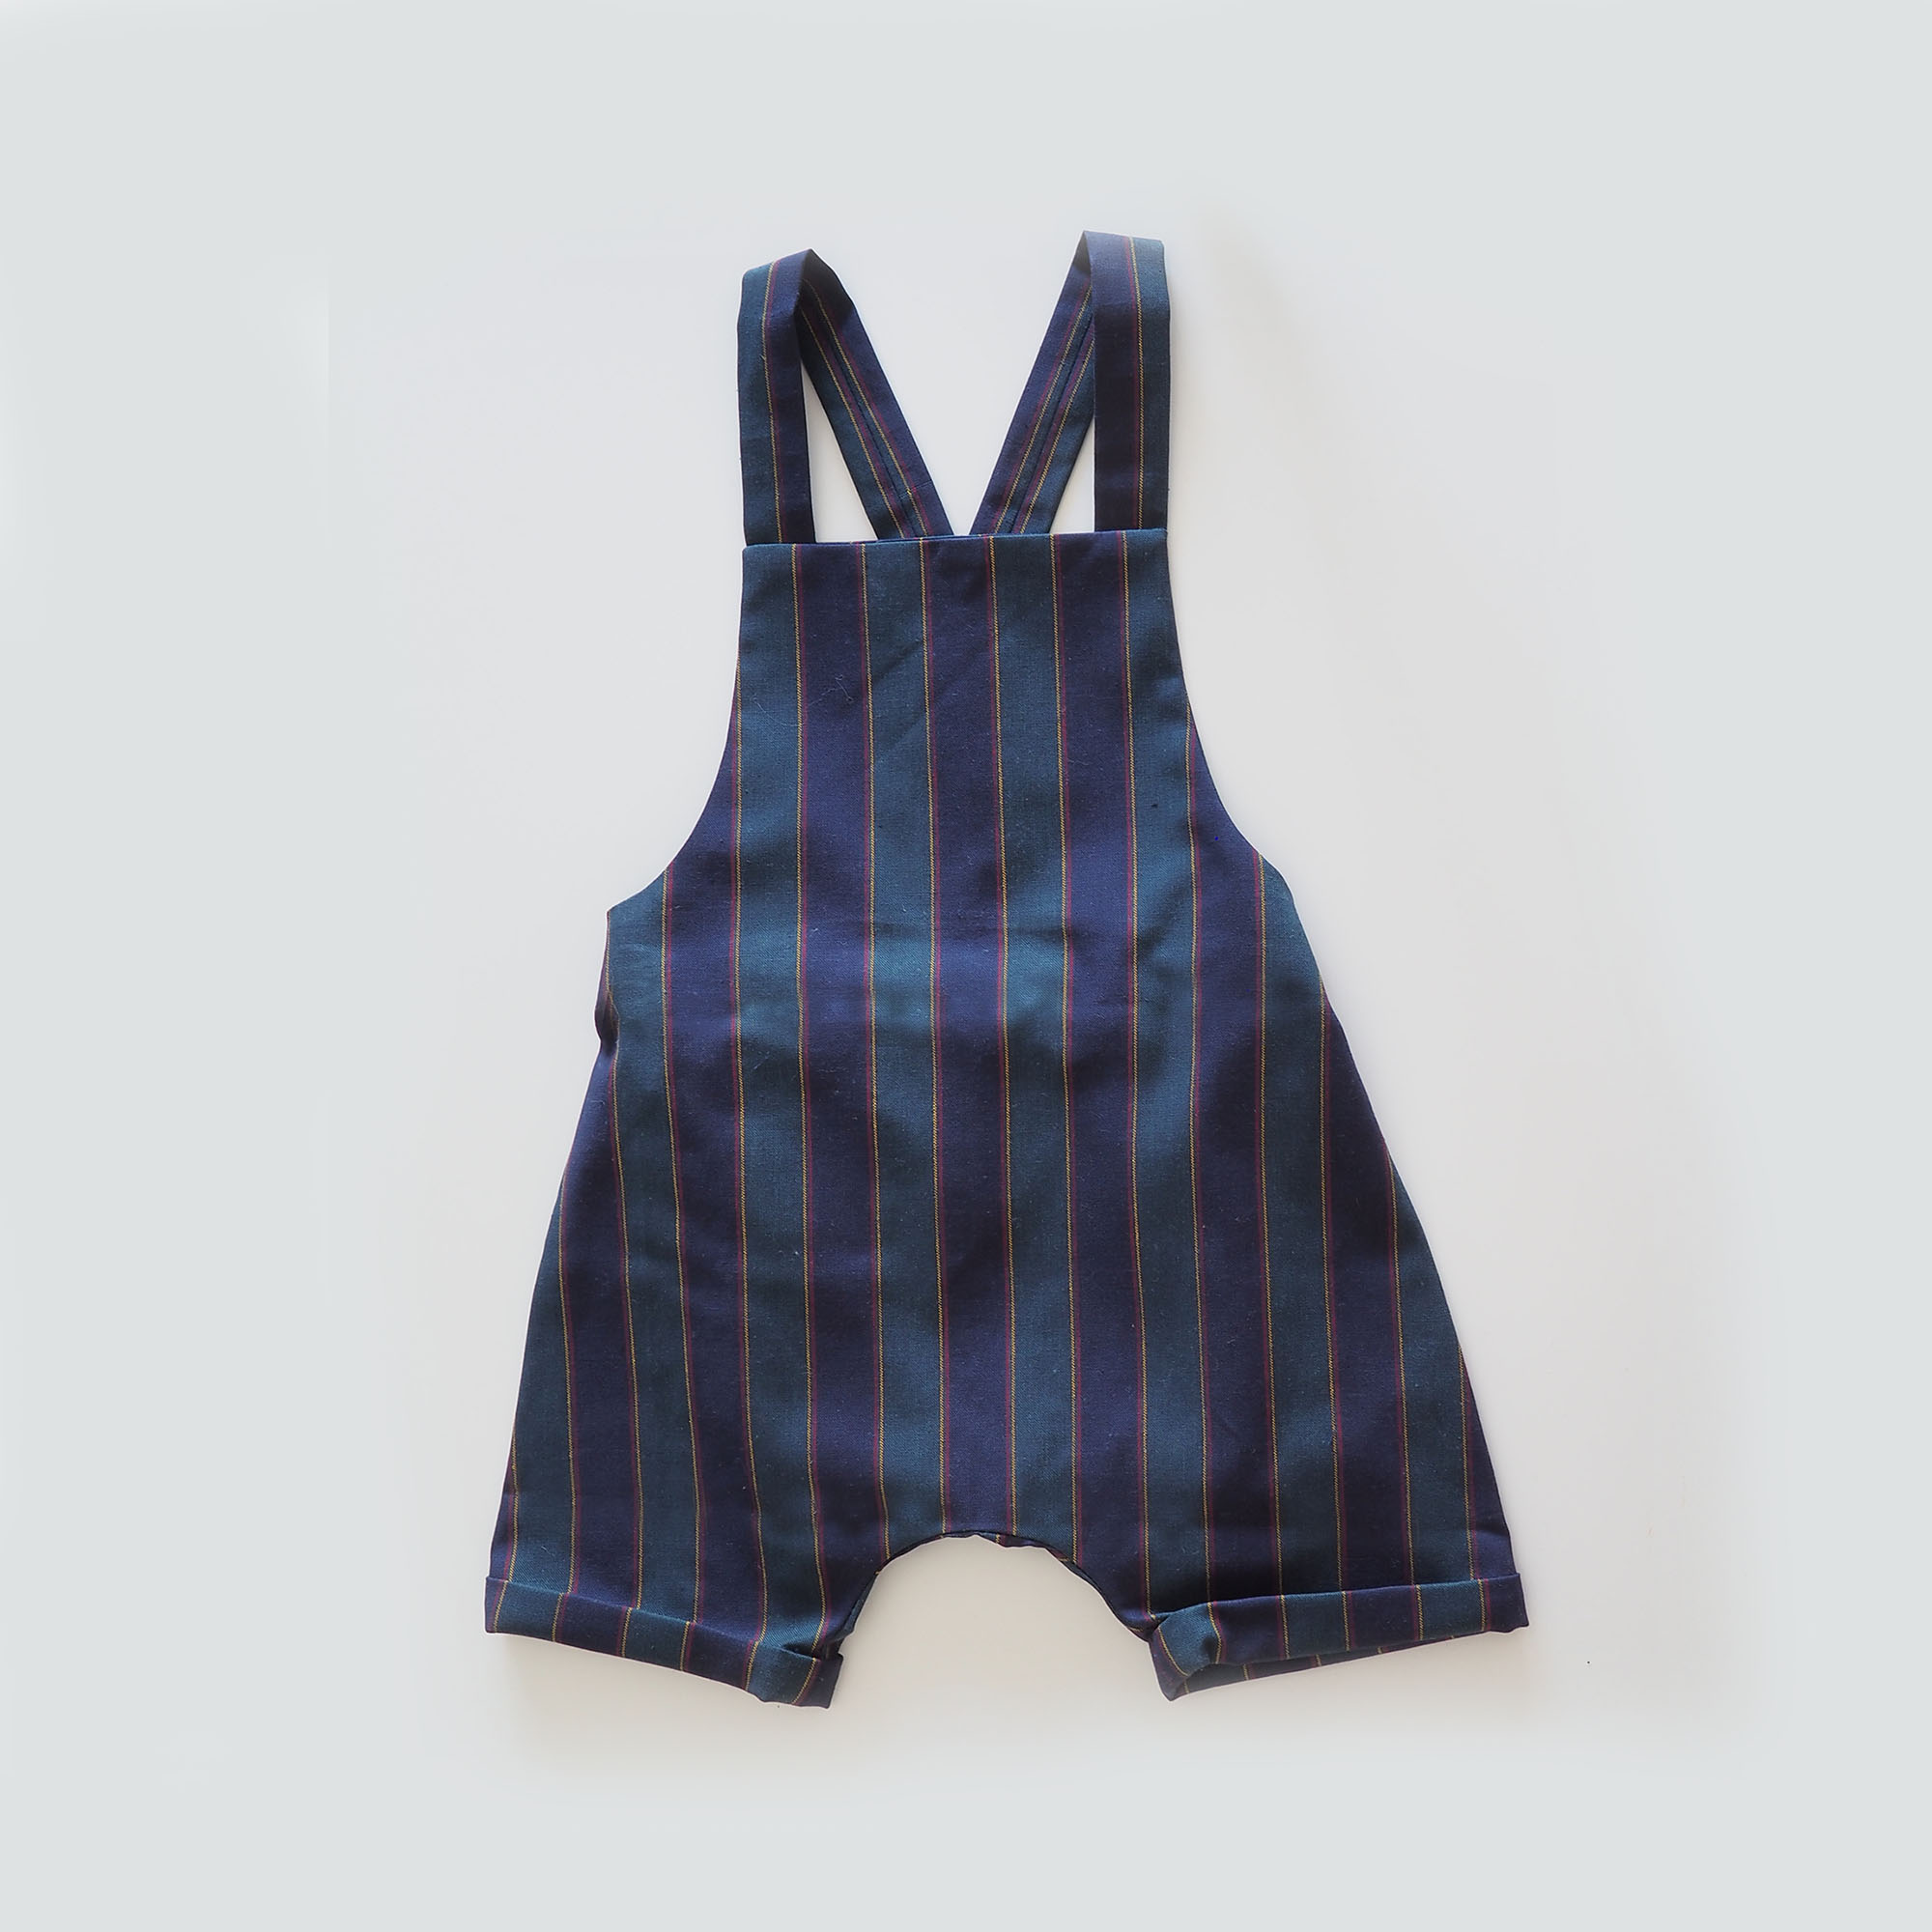 Baby romper,overalls,dungarees,green and blue stripes